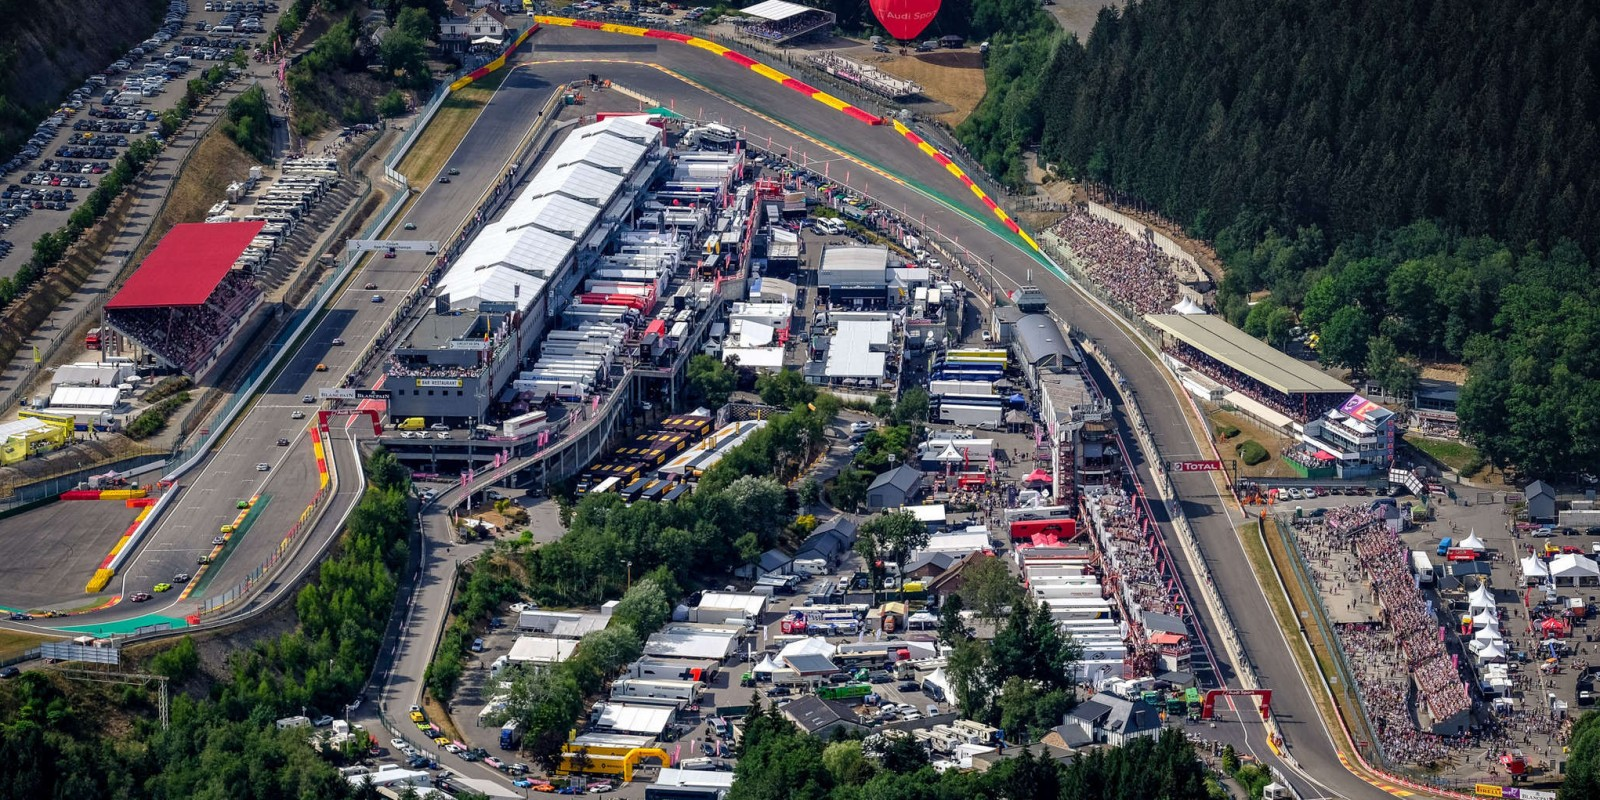 Pictures of the 24 hours of Spa 2018.